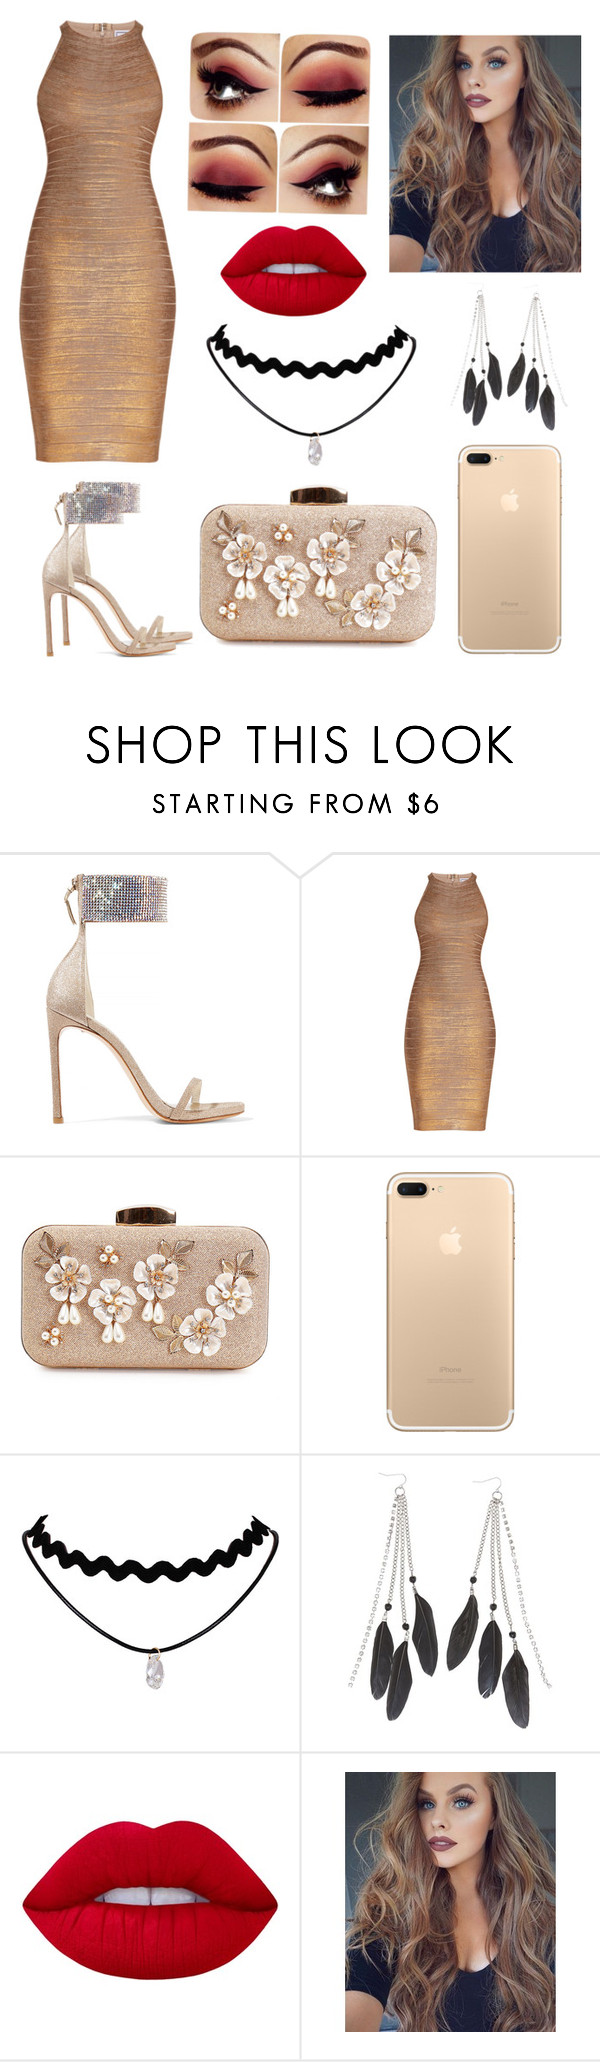 """""""Untitled #47"""" by kaaprinar ❤ liked on Polyvore featuring Stuart Weitzman, Hervé Léger, Charlotte Russe and Lime Crime"""